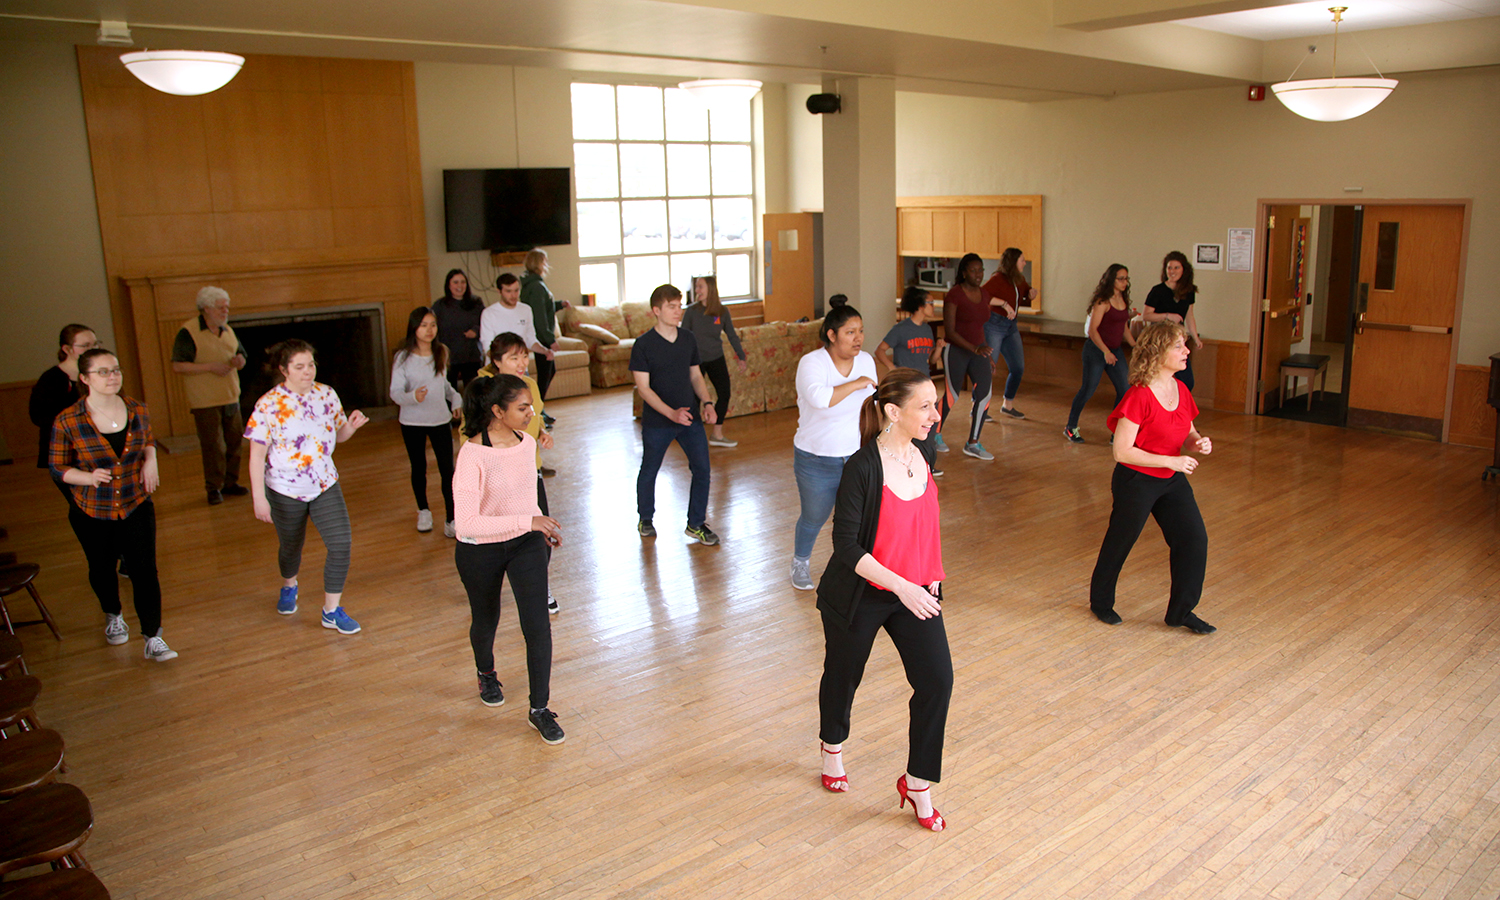 Yahismar Hay (front, left) and Heidi Kraft lead a salsa dancing master class in the Hirshon Ballroom.